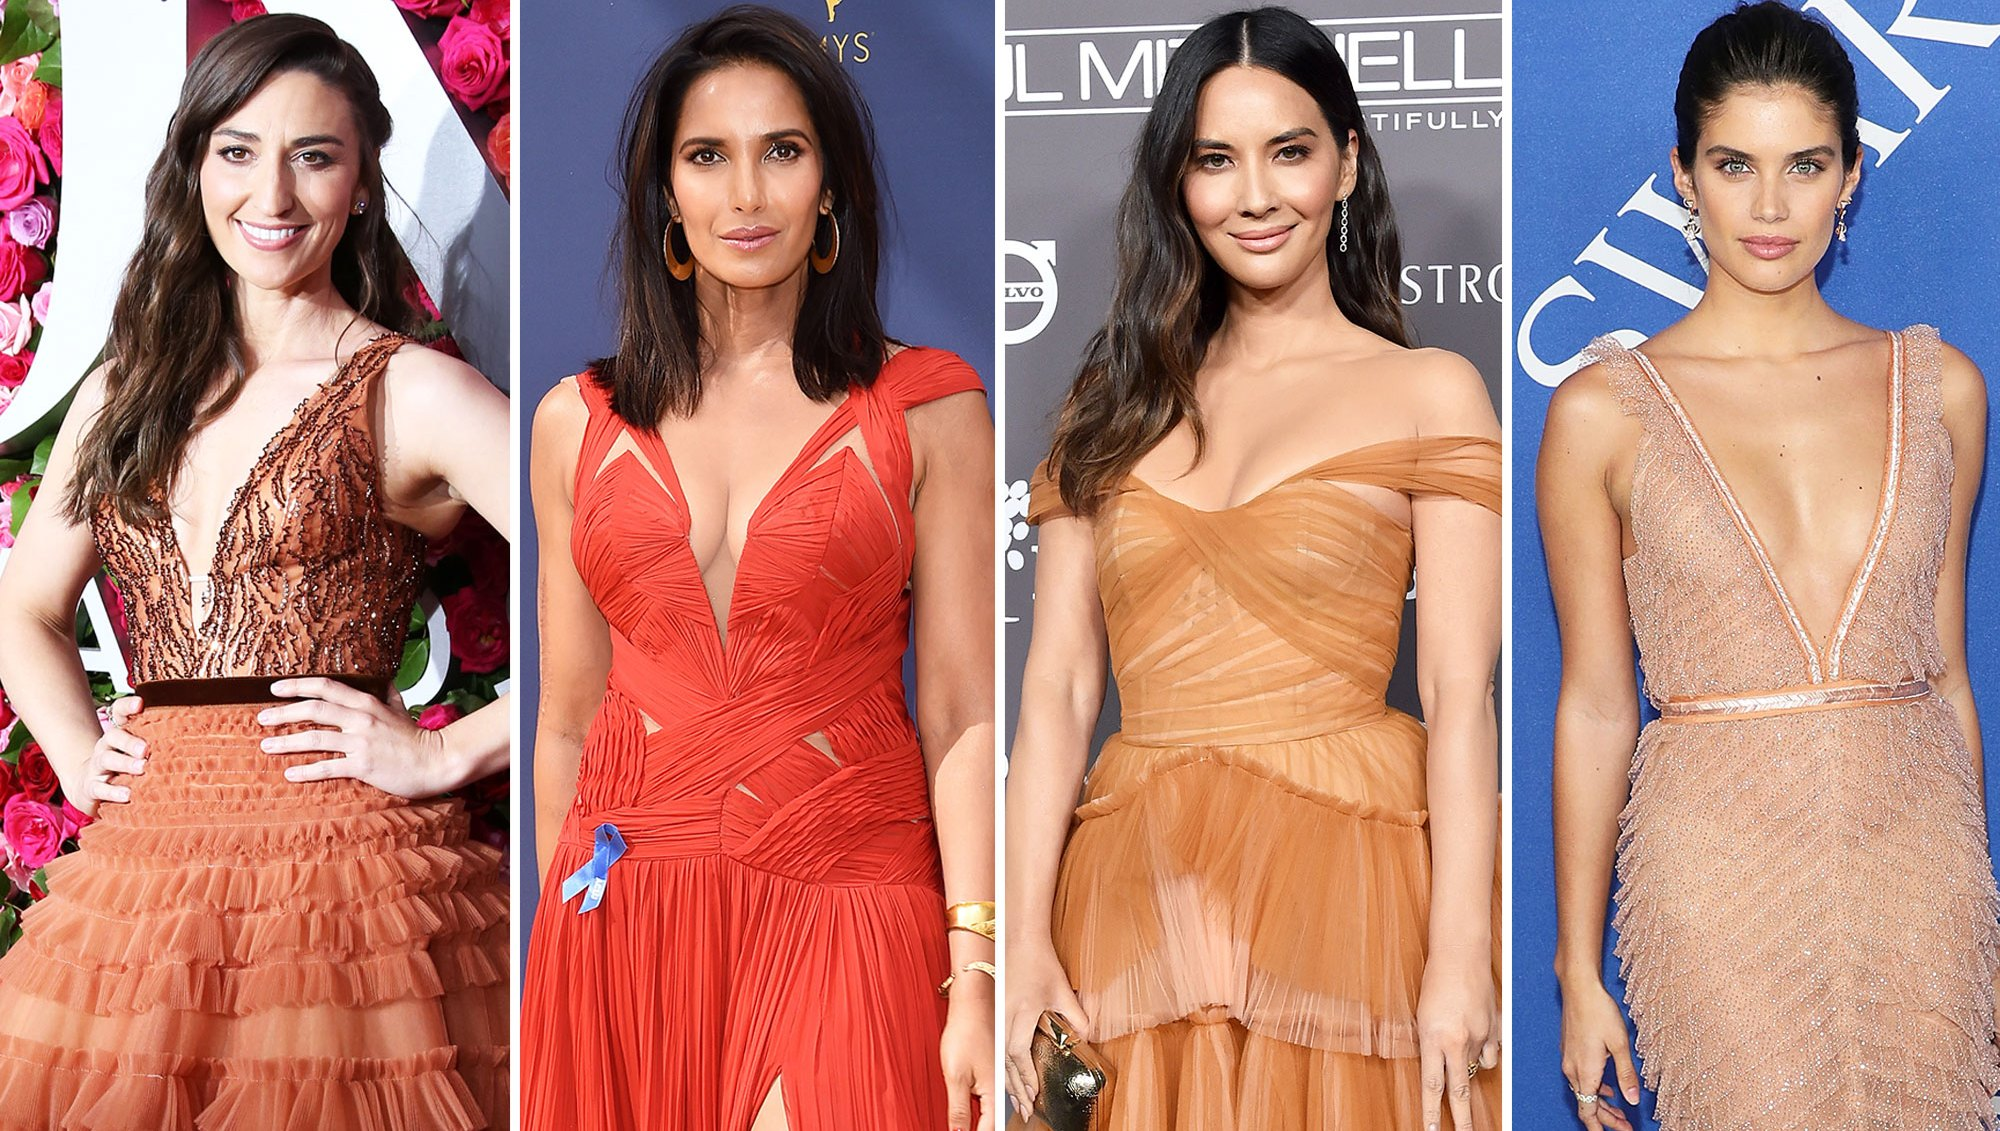 Red Carpet J. Mendel gallery for Stylish Sara Bareilles, Padma Lakshmi, Olivia Munn, and Sara Sampaio